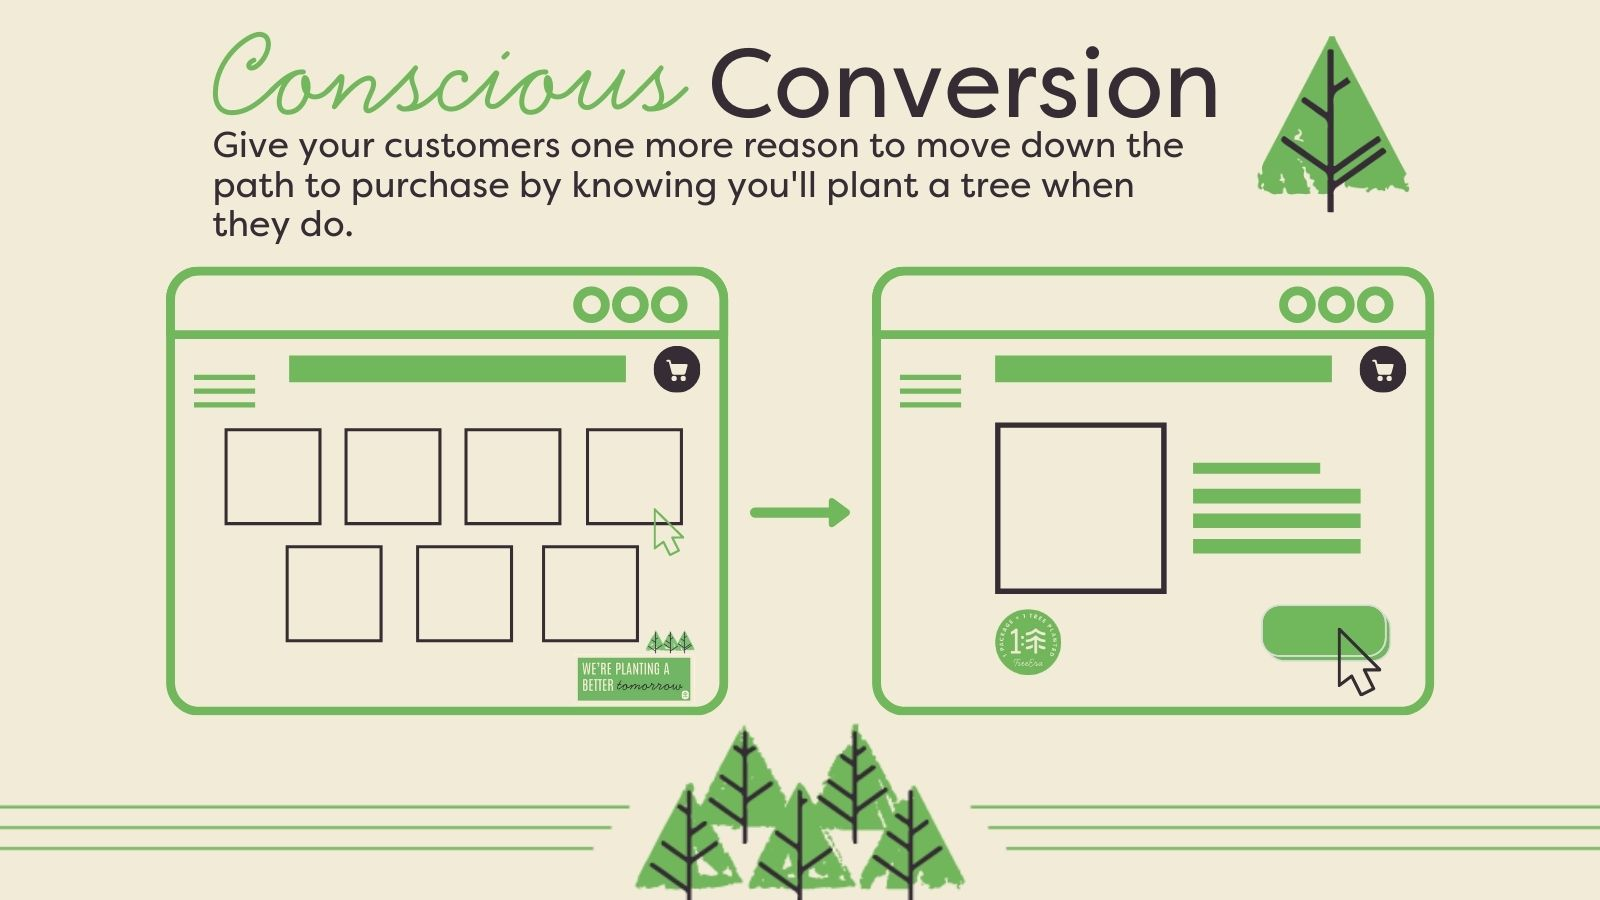 Make every conversion an eco-conscious one.